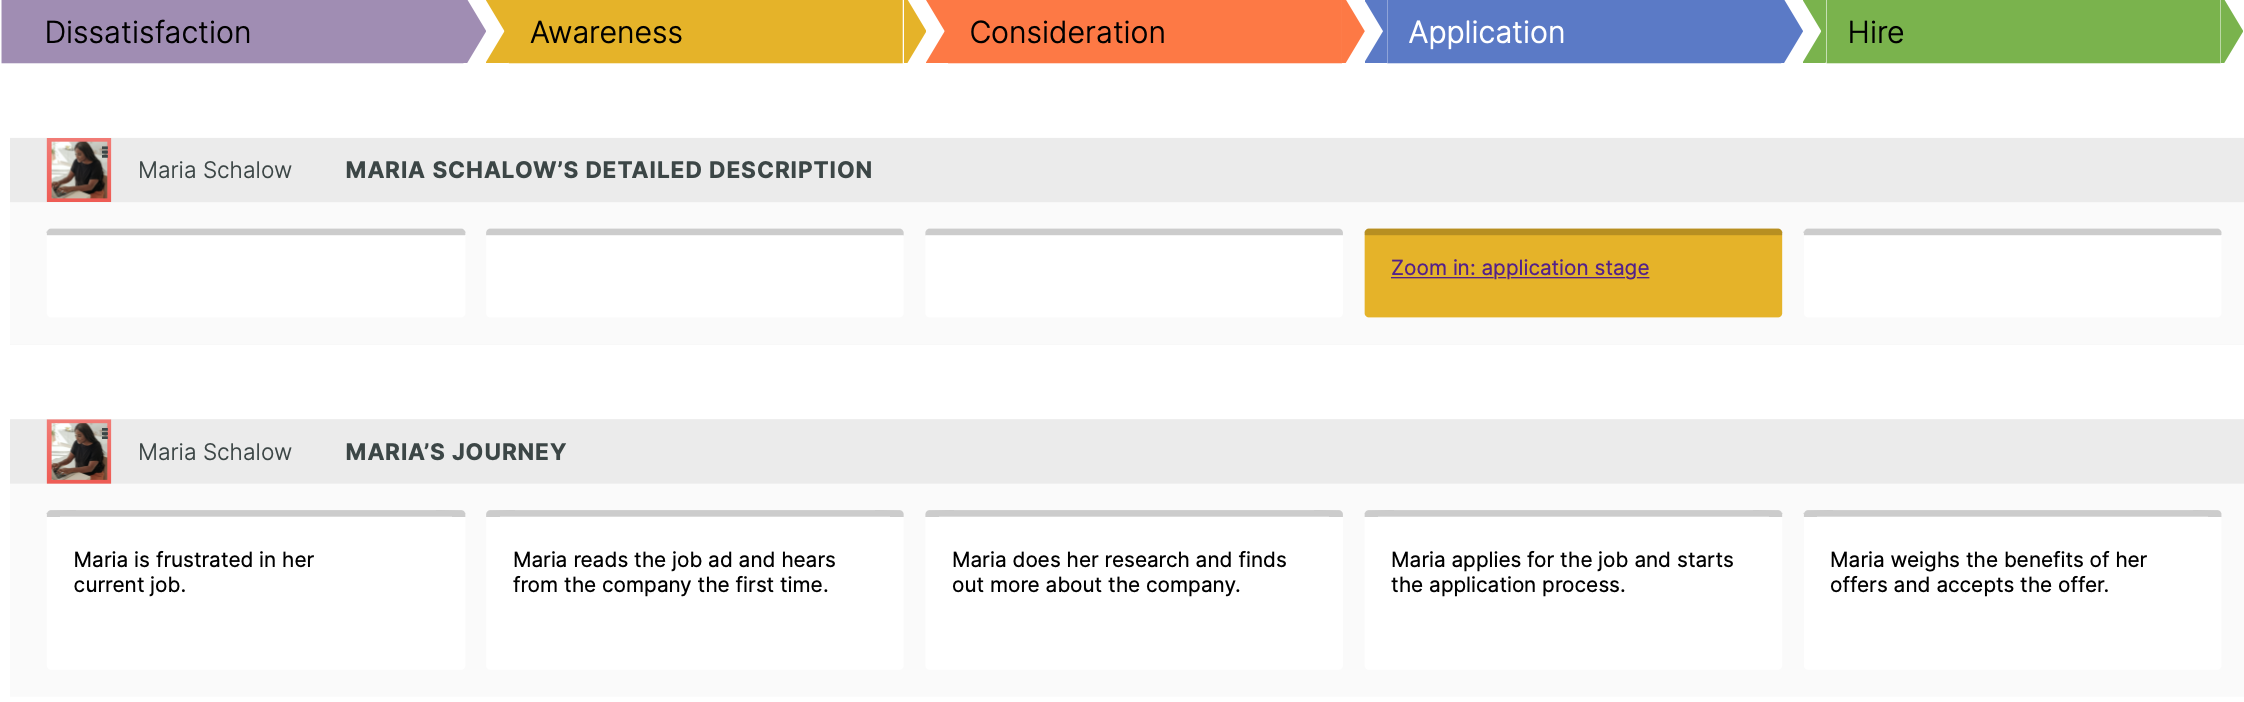 journey map example of the recruitment process